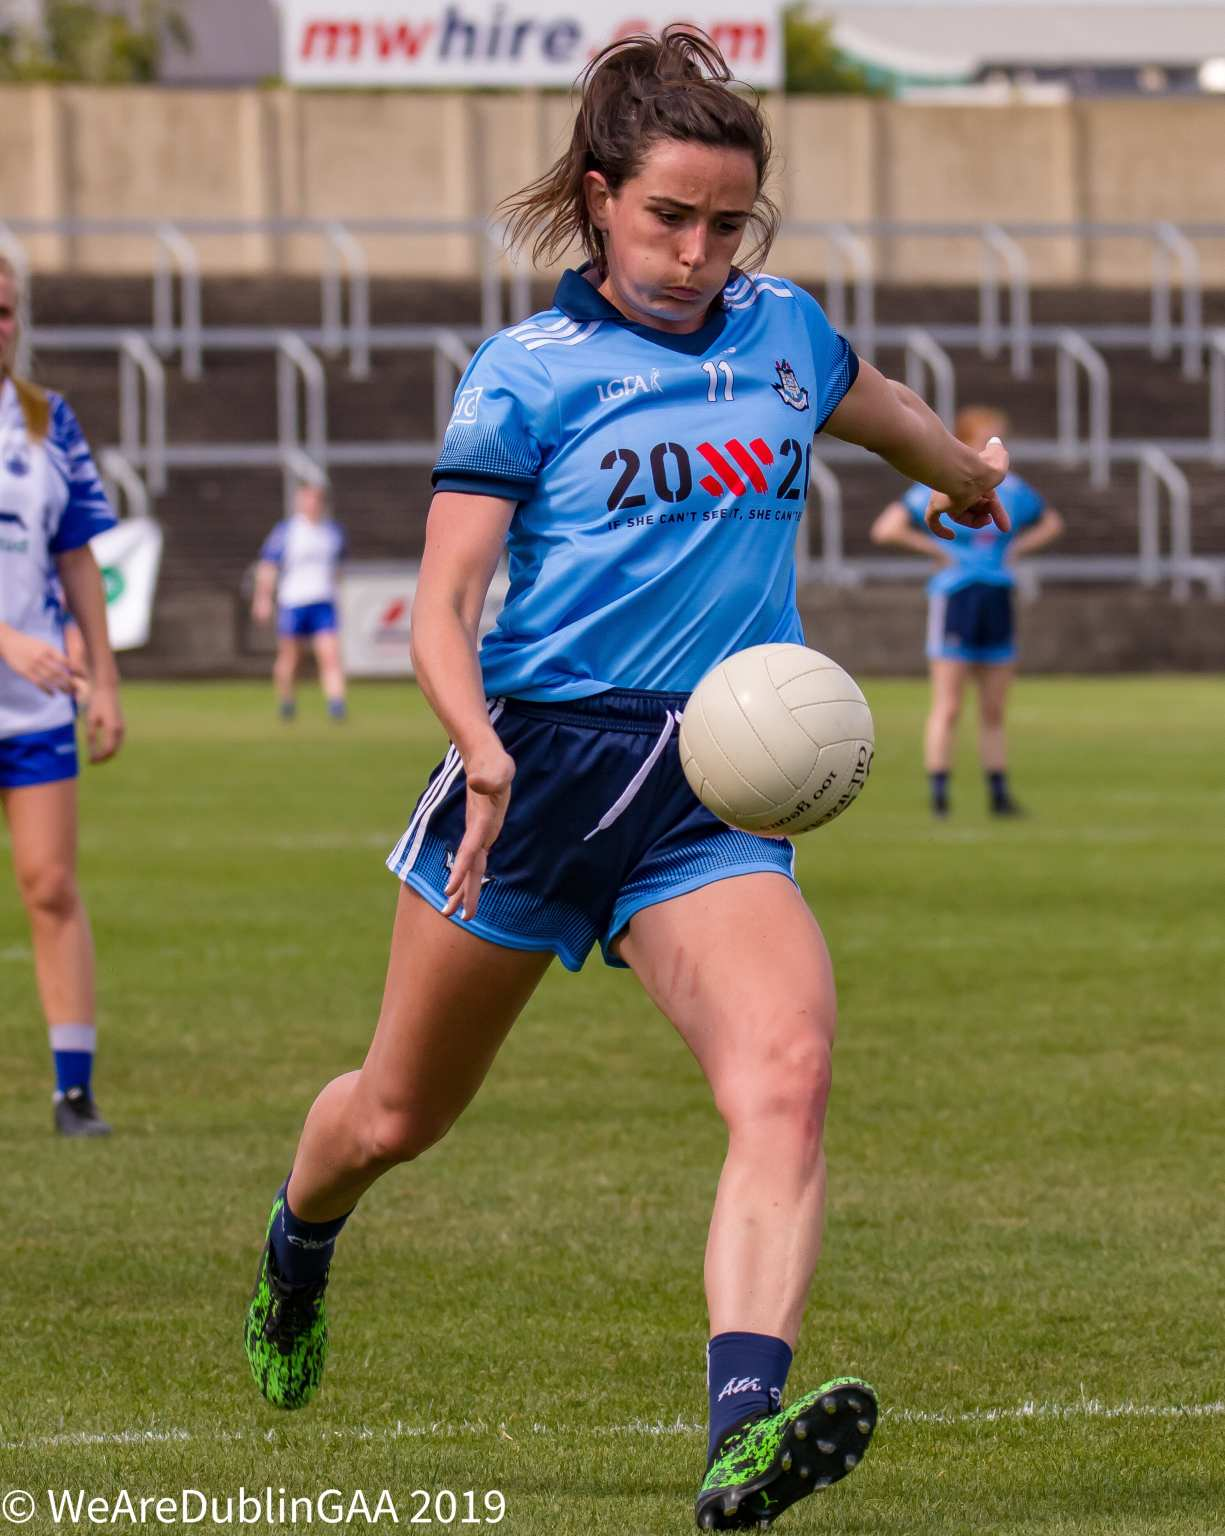 Dublin's Niamh McEvoy just about to strike the ball during Dublin's comfortable win over Waterford